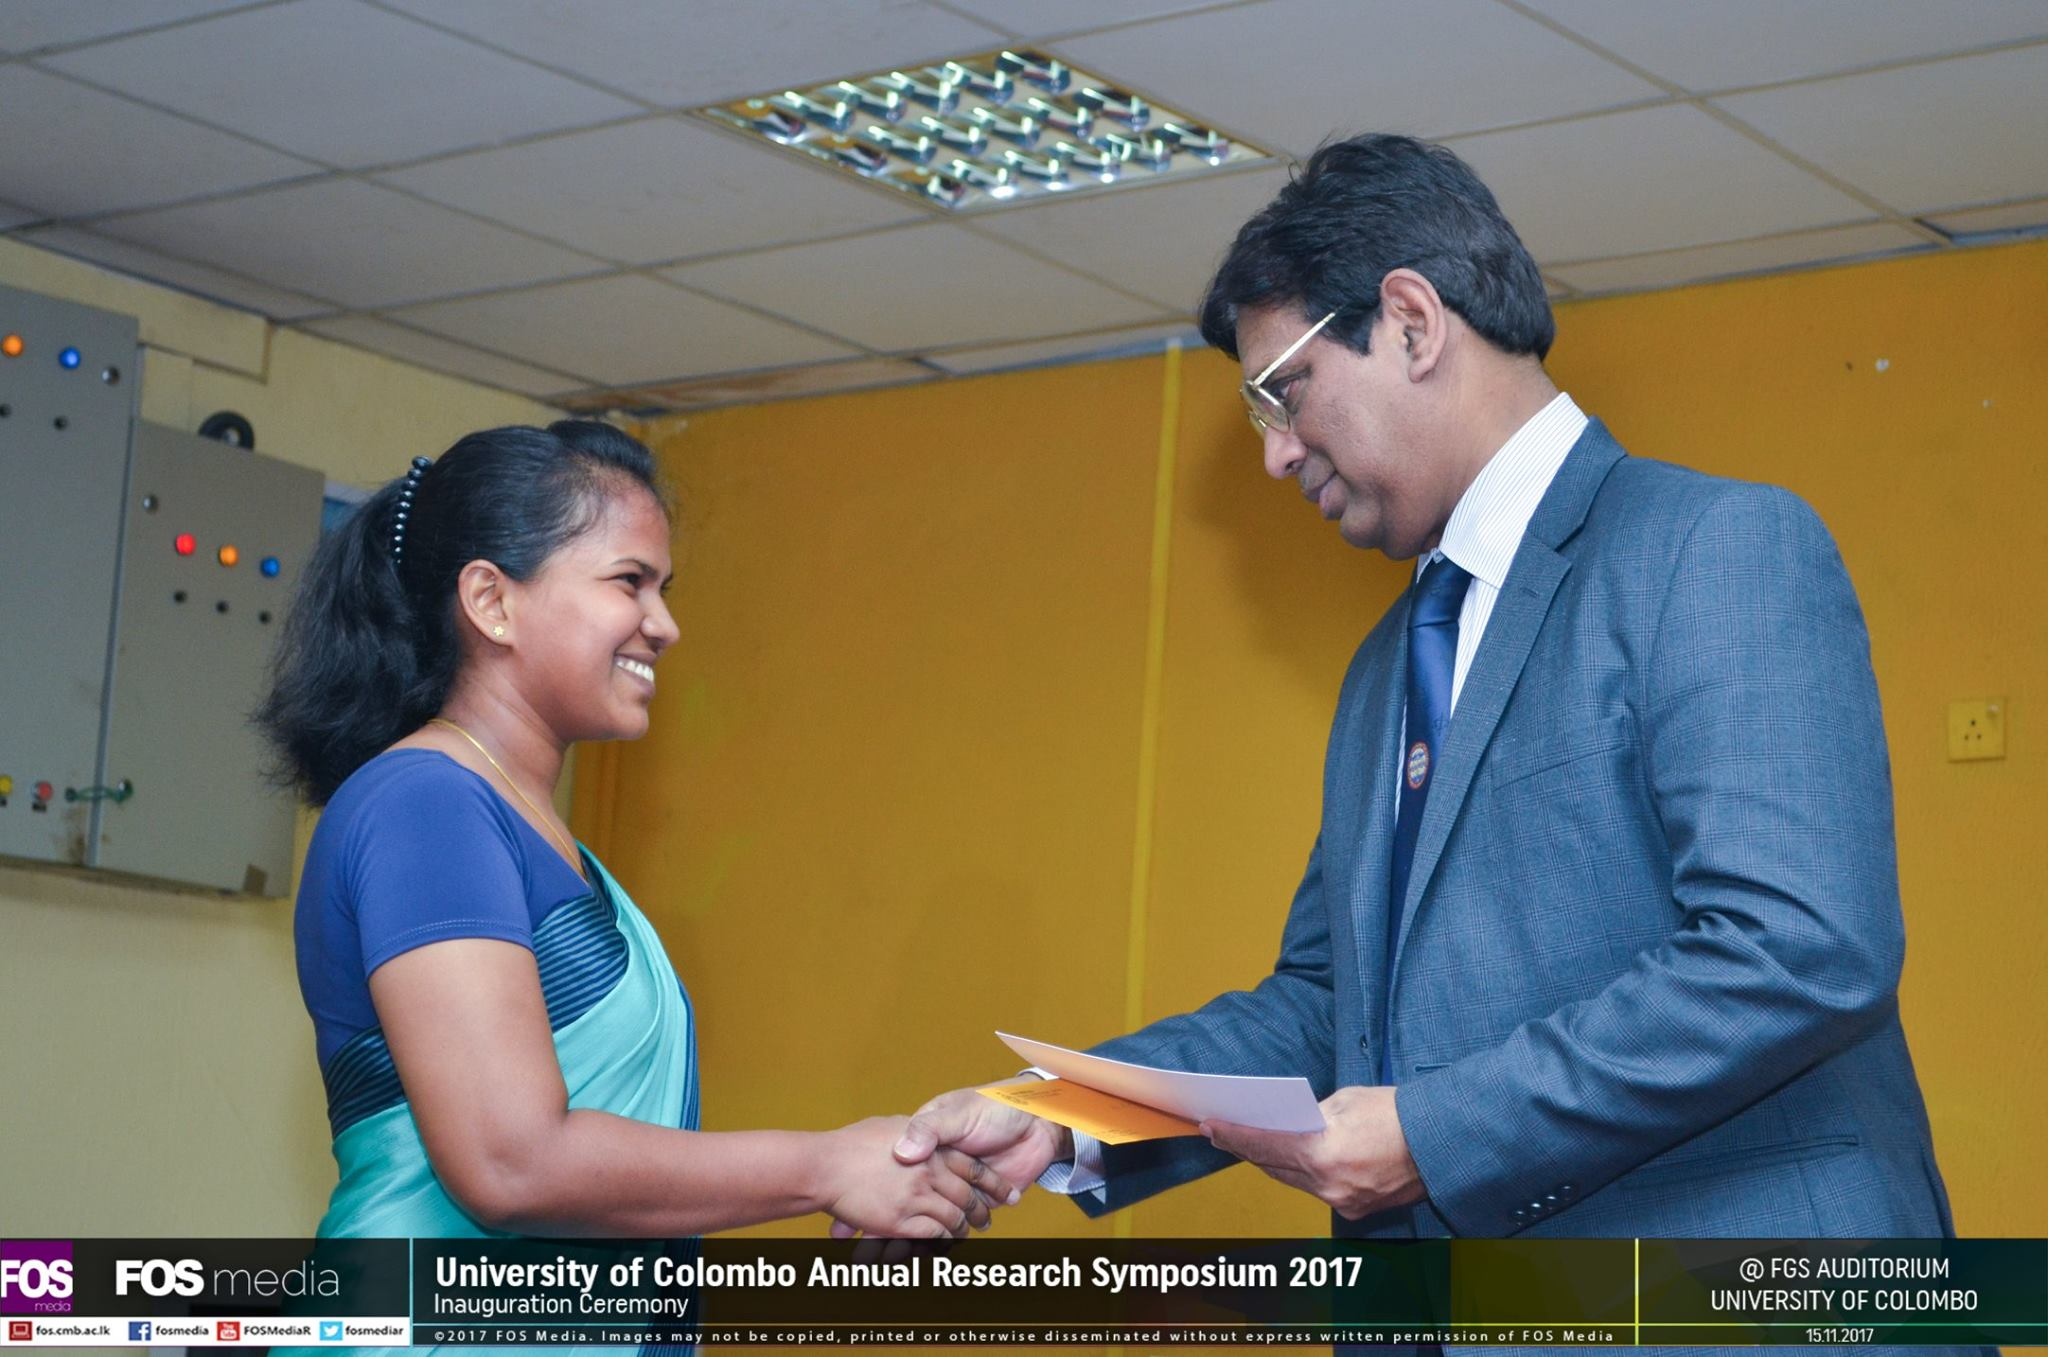 UOC Research Symposium 2017 – Artwork Competition